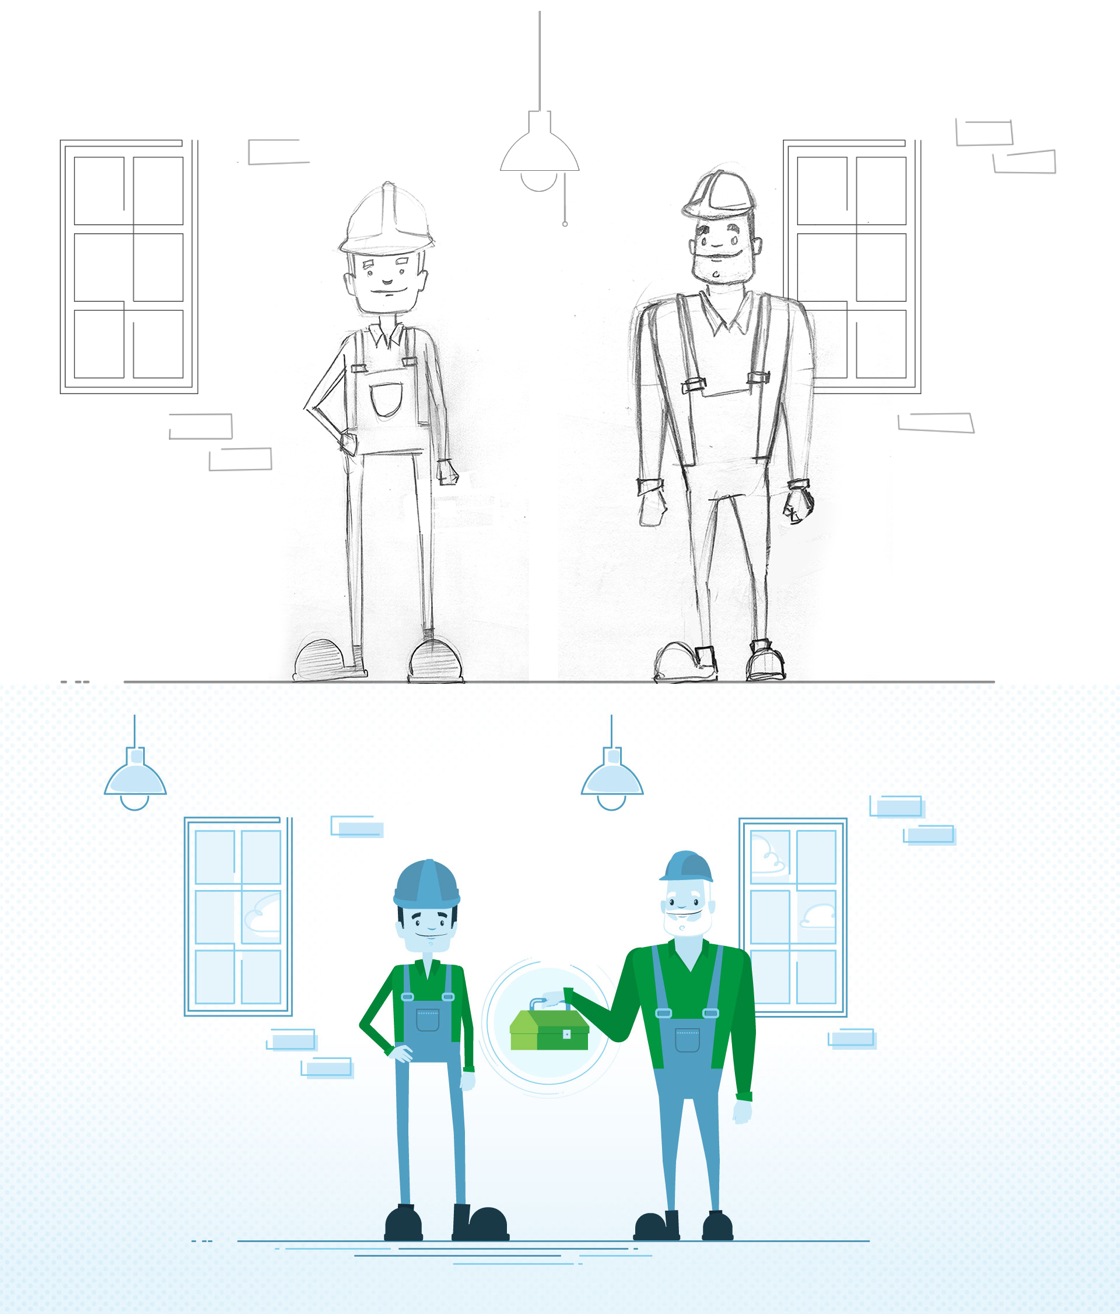 Sketch and illustration from the motion design video for EnviroCompétences